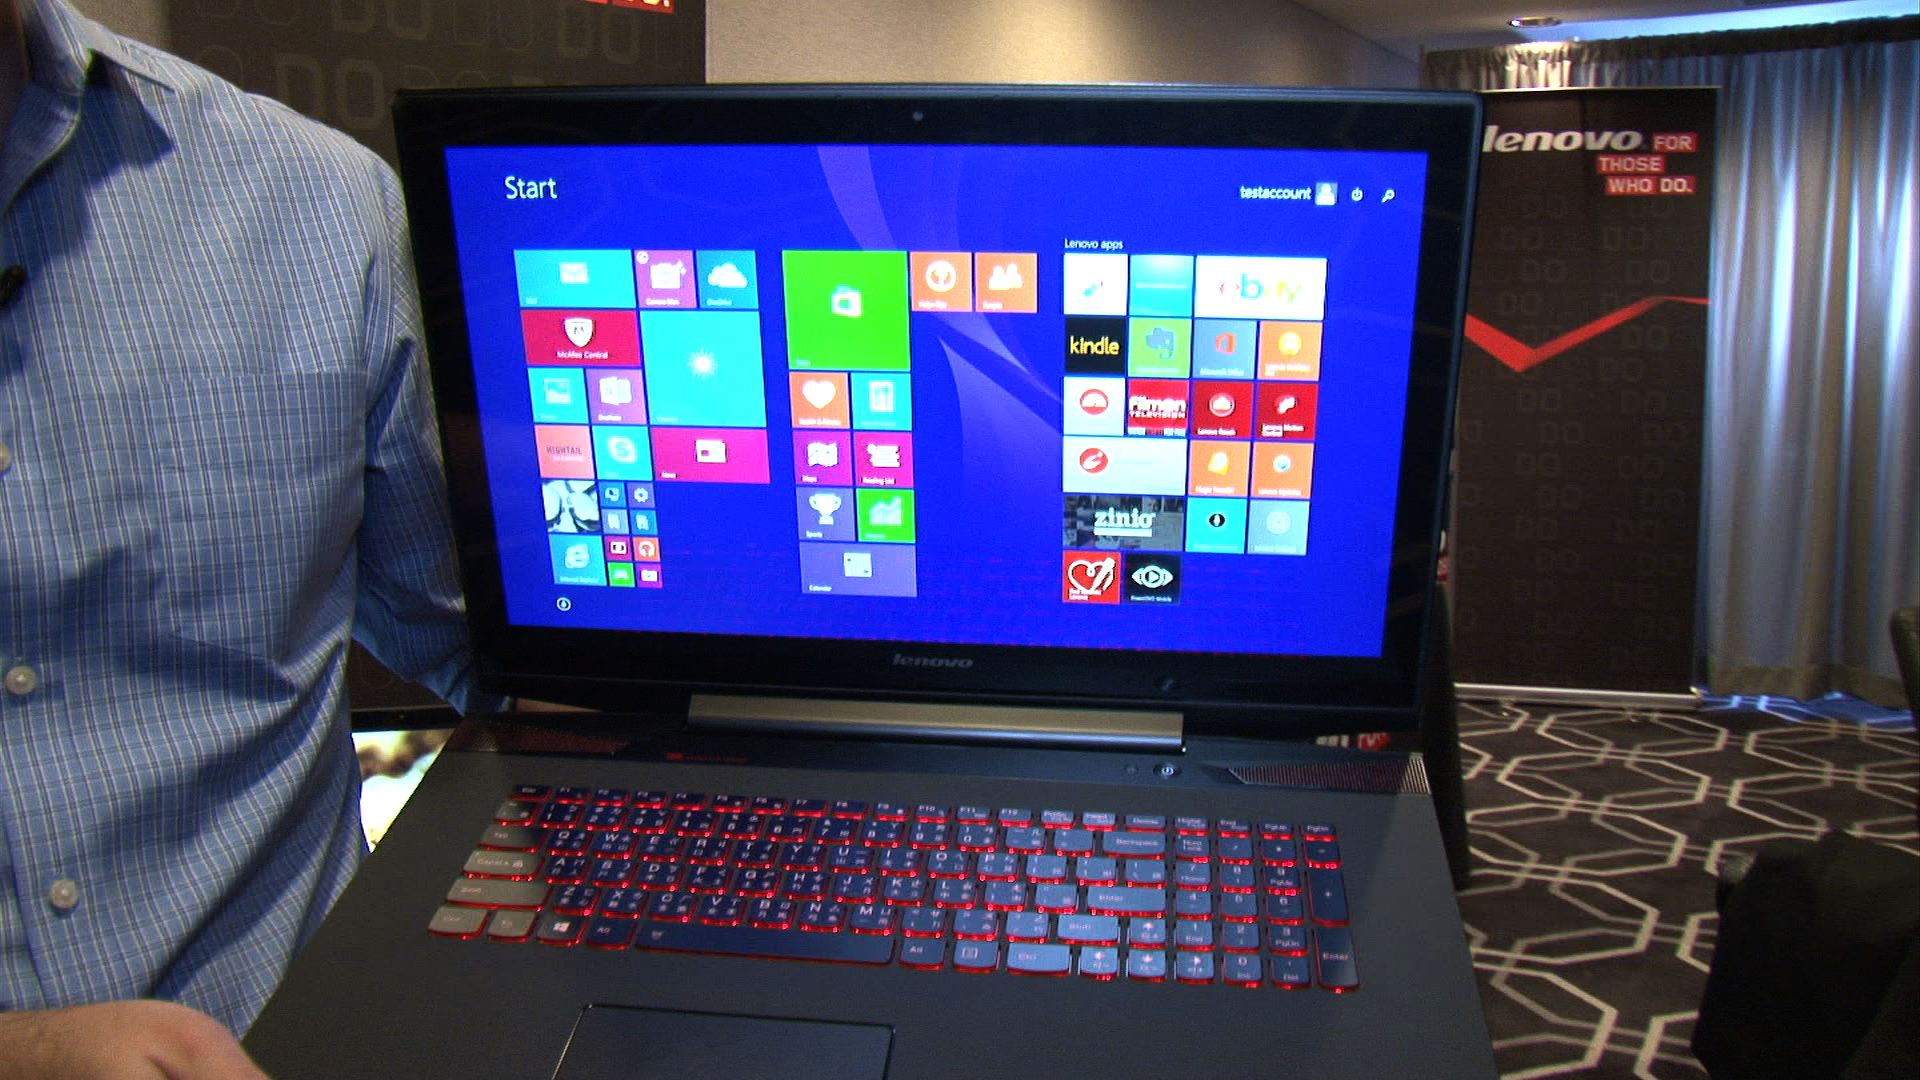 Video: Hands-on with the Lenovo Y70 Touch